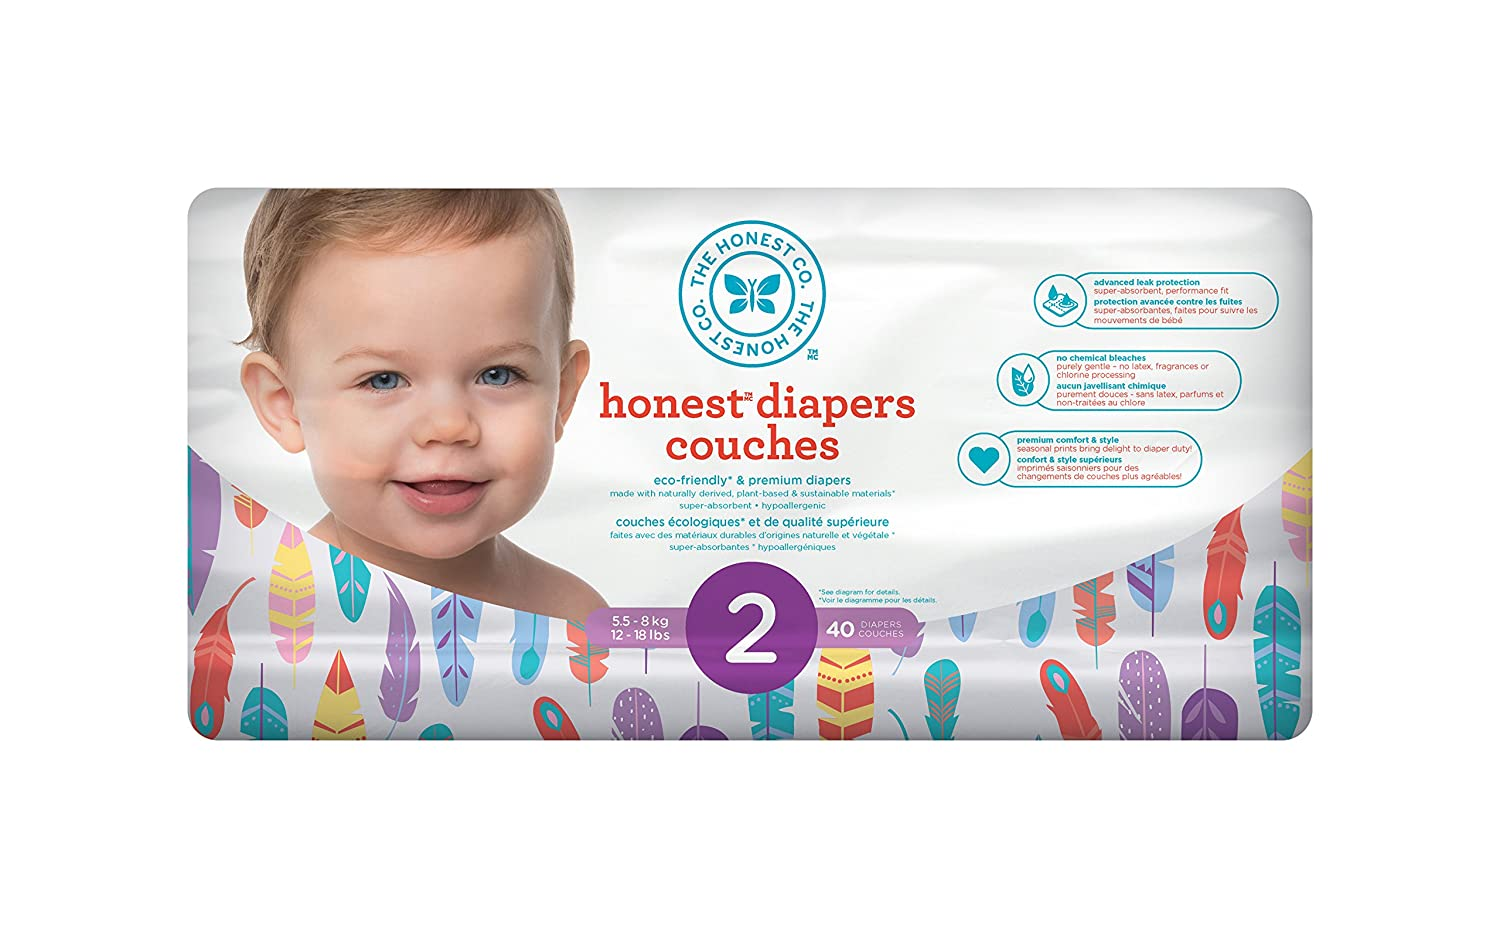 size 2 painted feathers ptin polybag 40 Count The Honest Company Disposable diapers